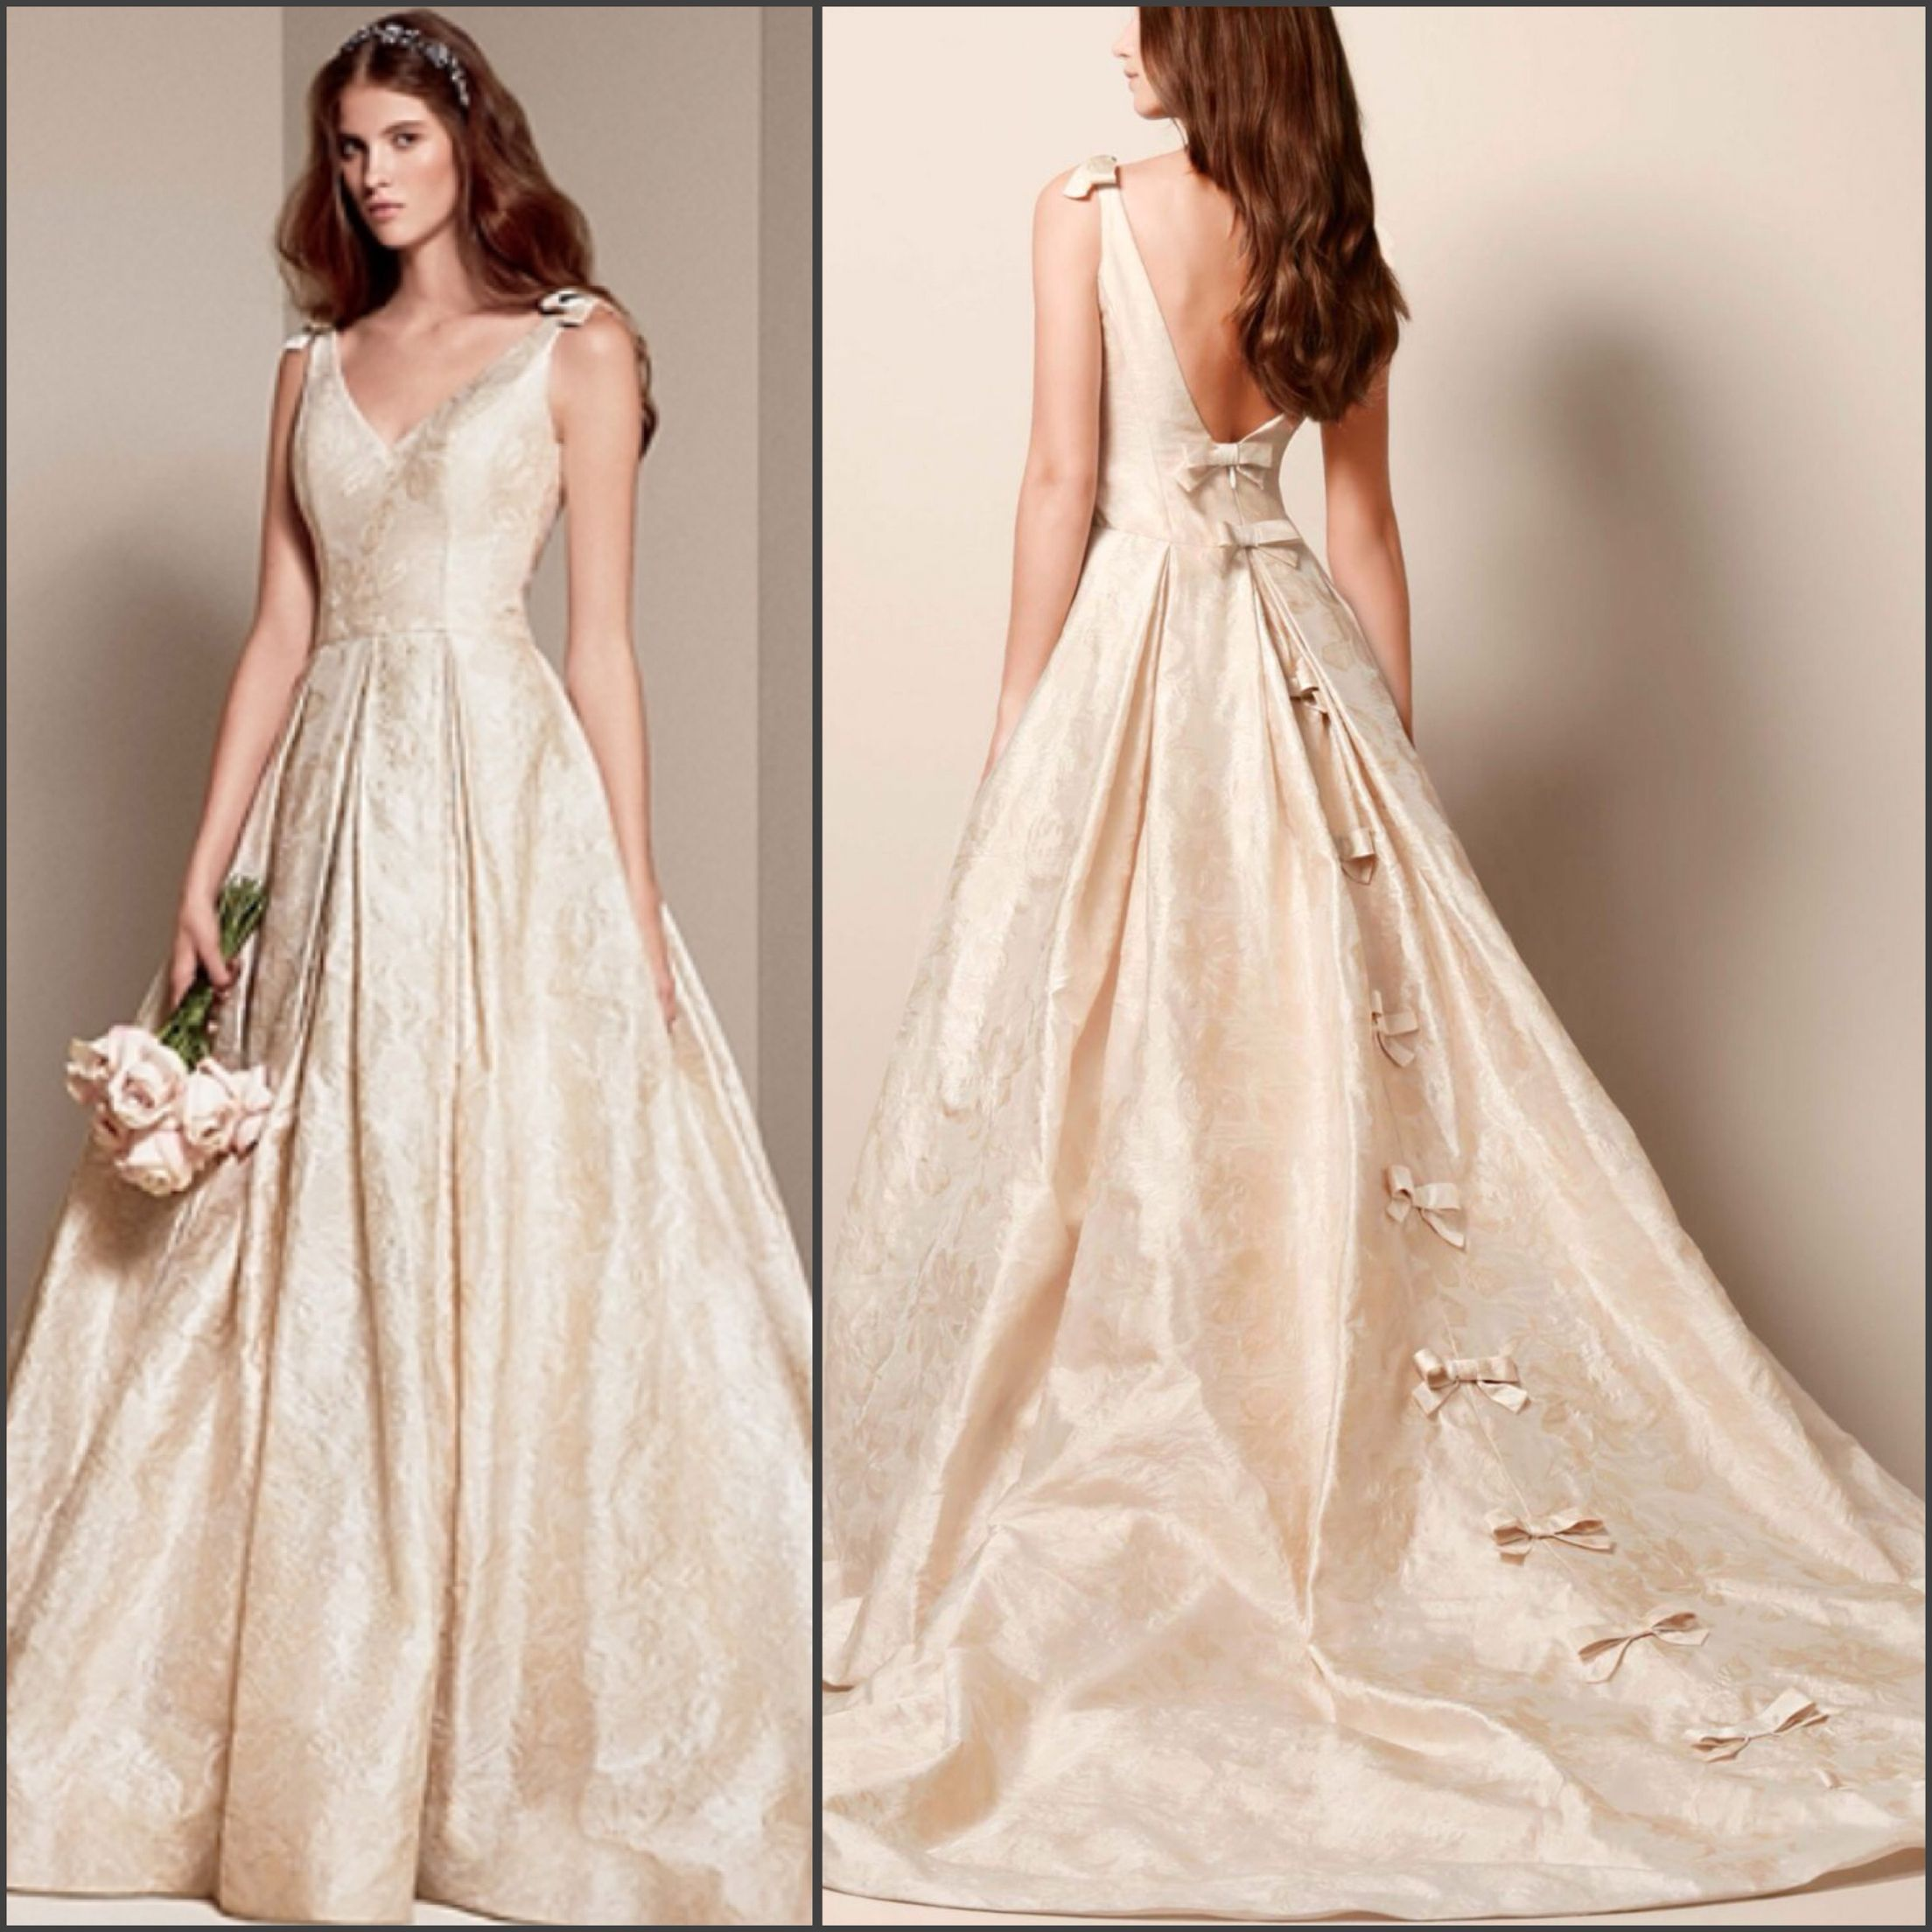 Preowned Wedding Gowns: White By Vera Wang Double-weaved Floral Matelasse Ball